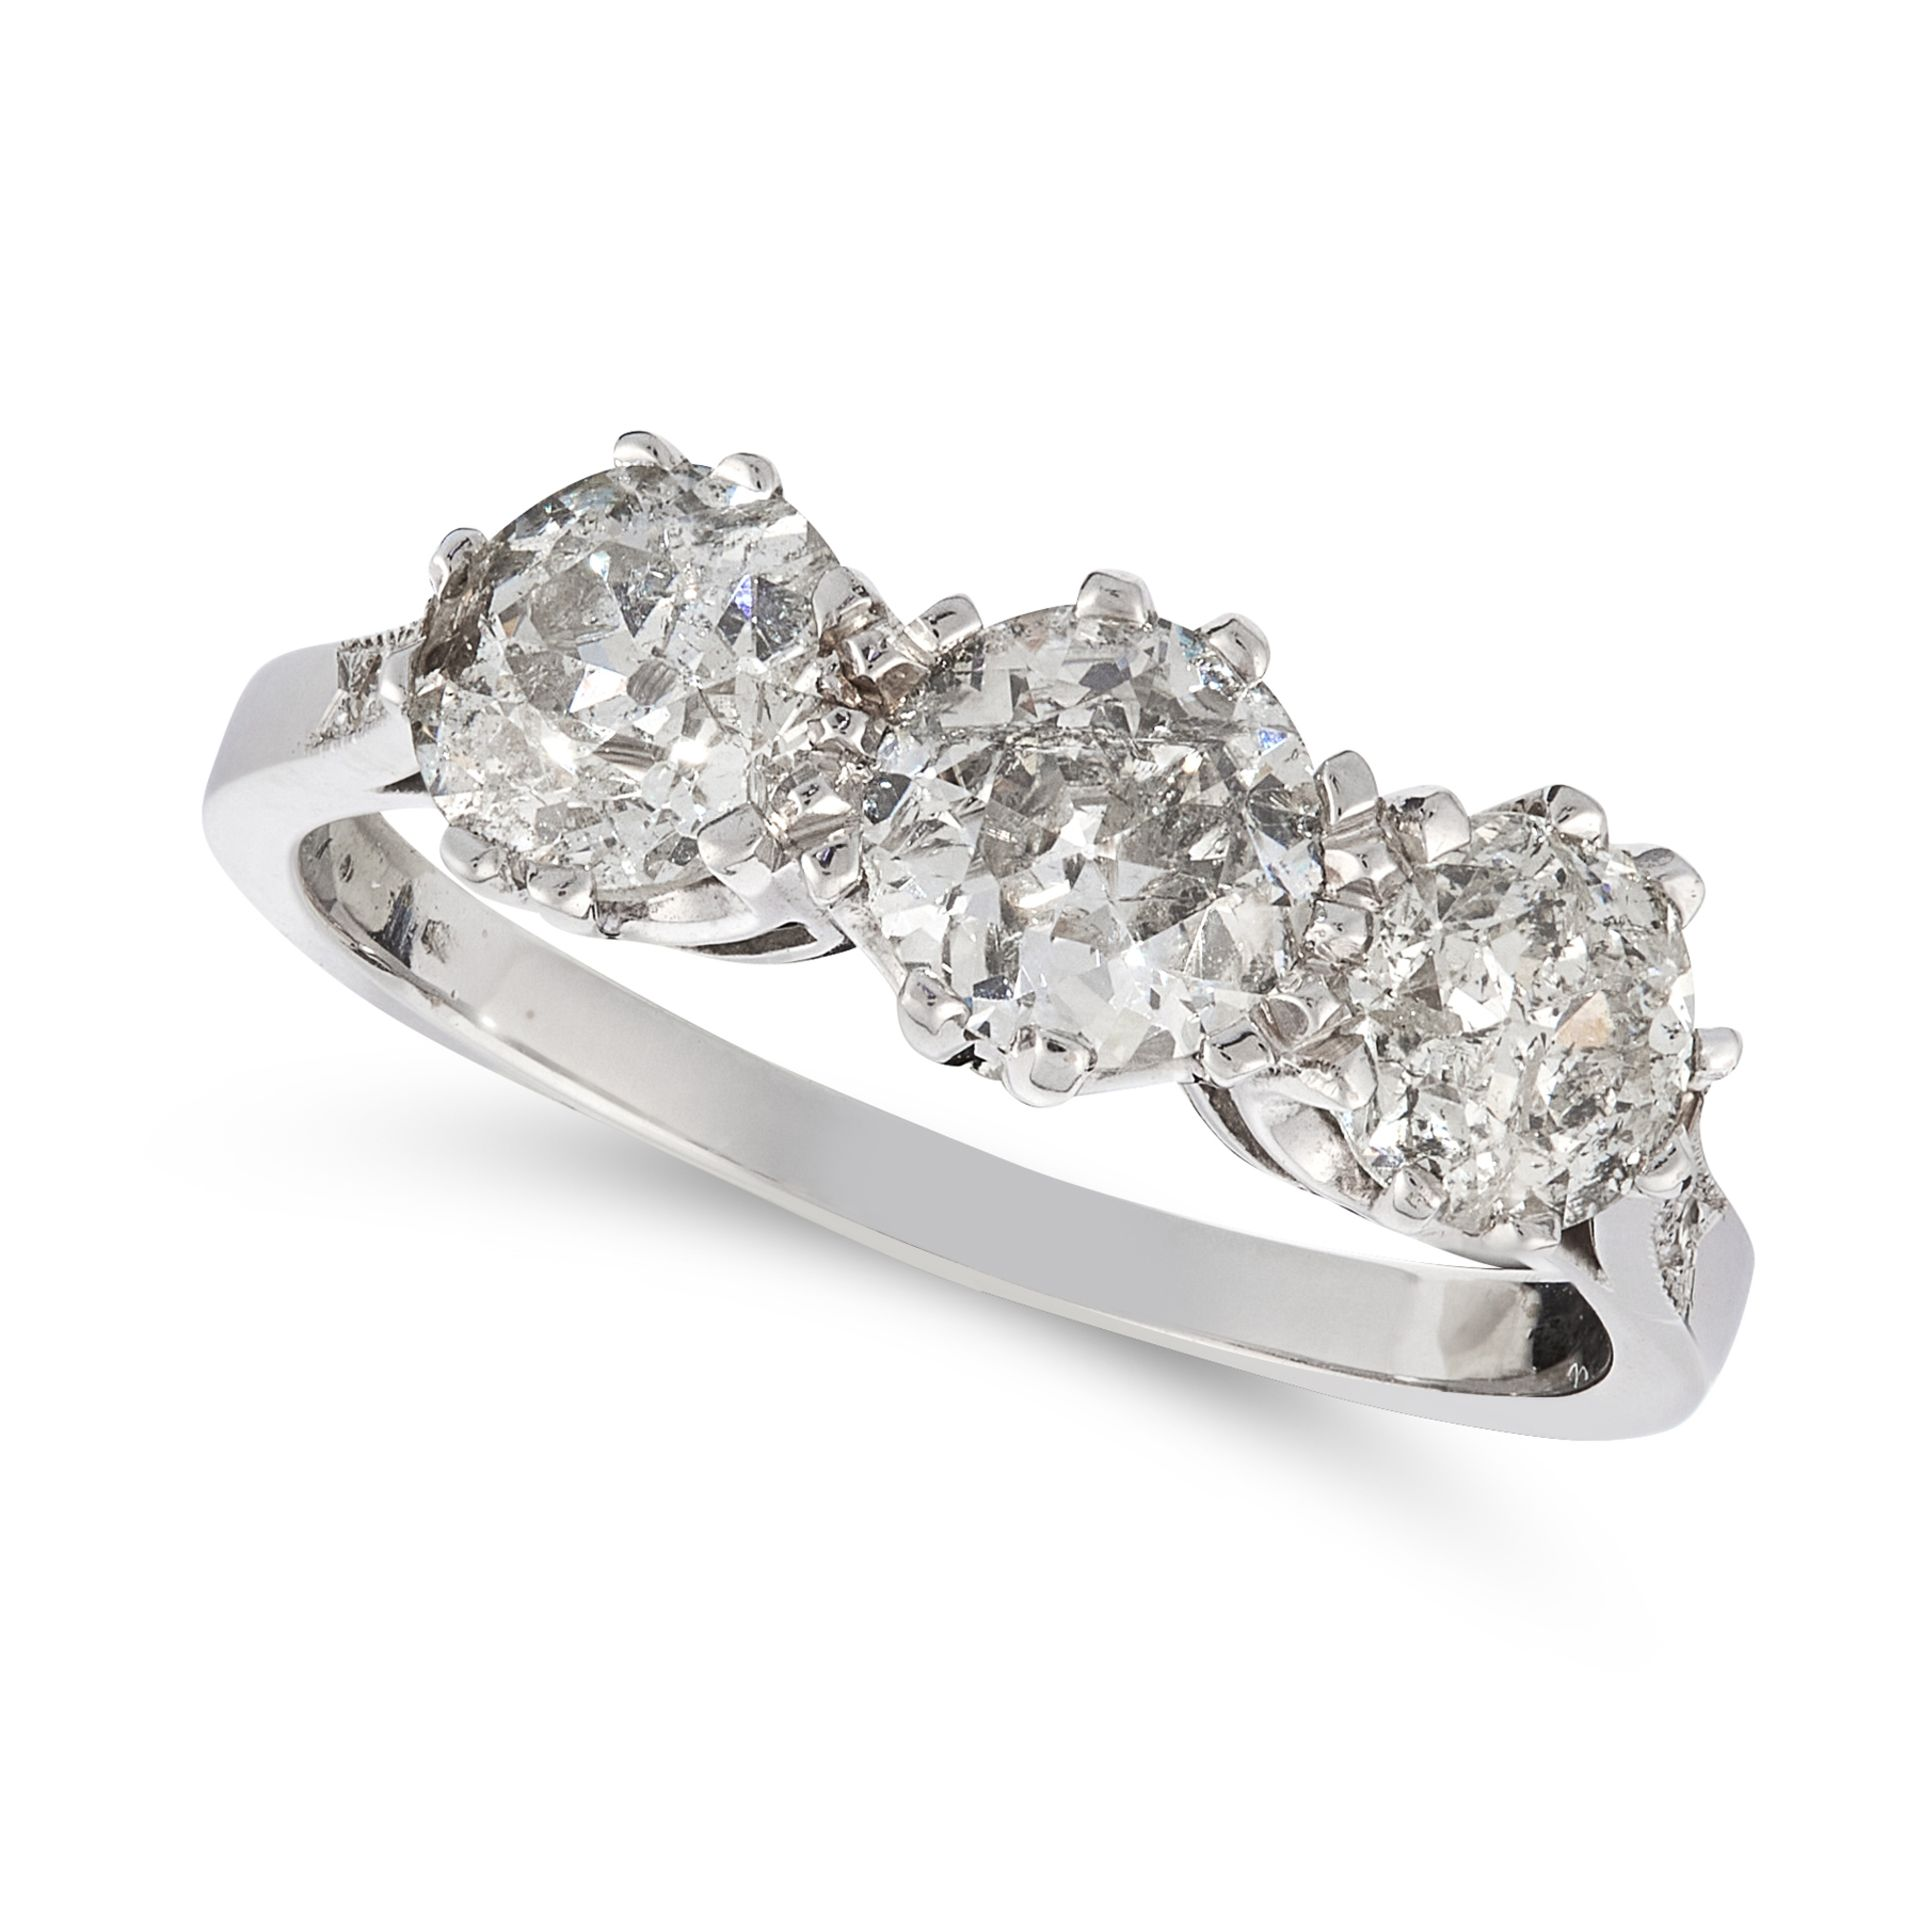 A DIAMOND THREE STONE RING set with three round diamonds totalling 2.03 carats, unmarked, size N /